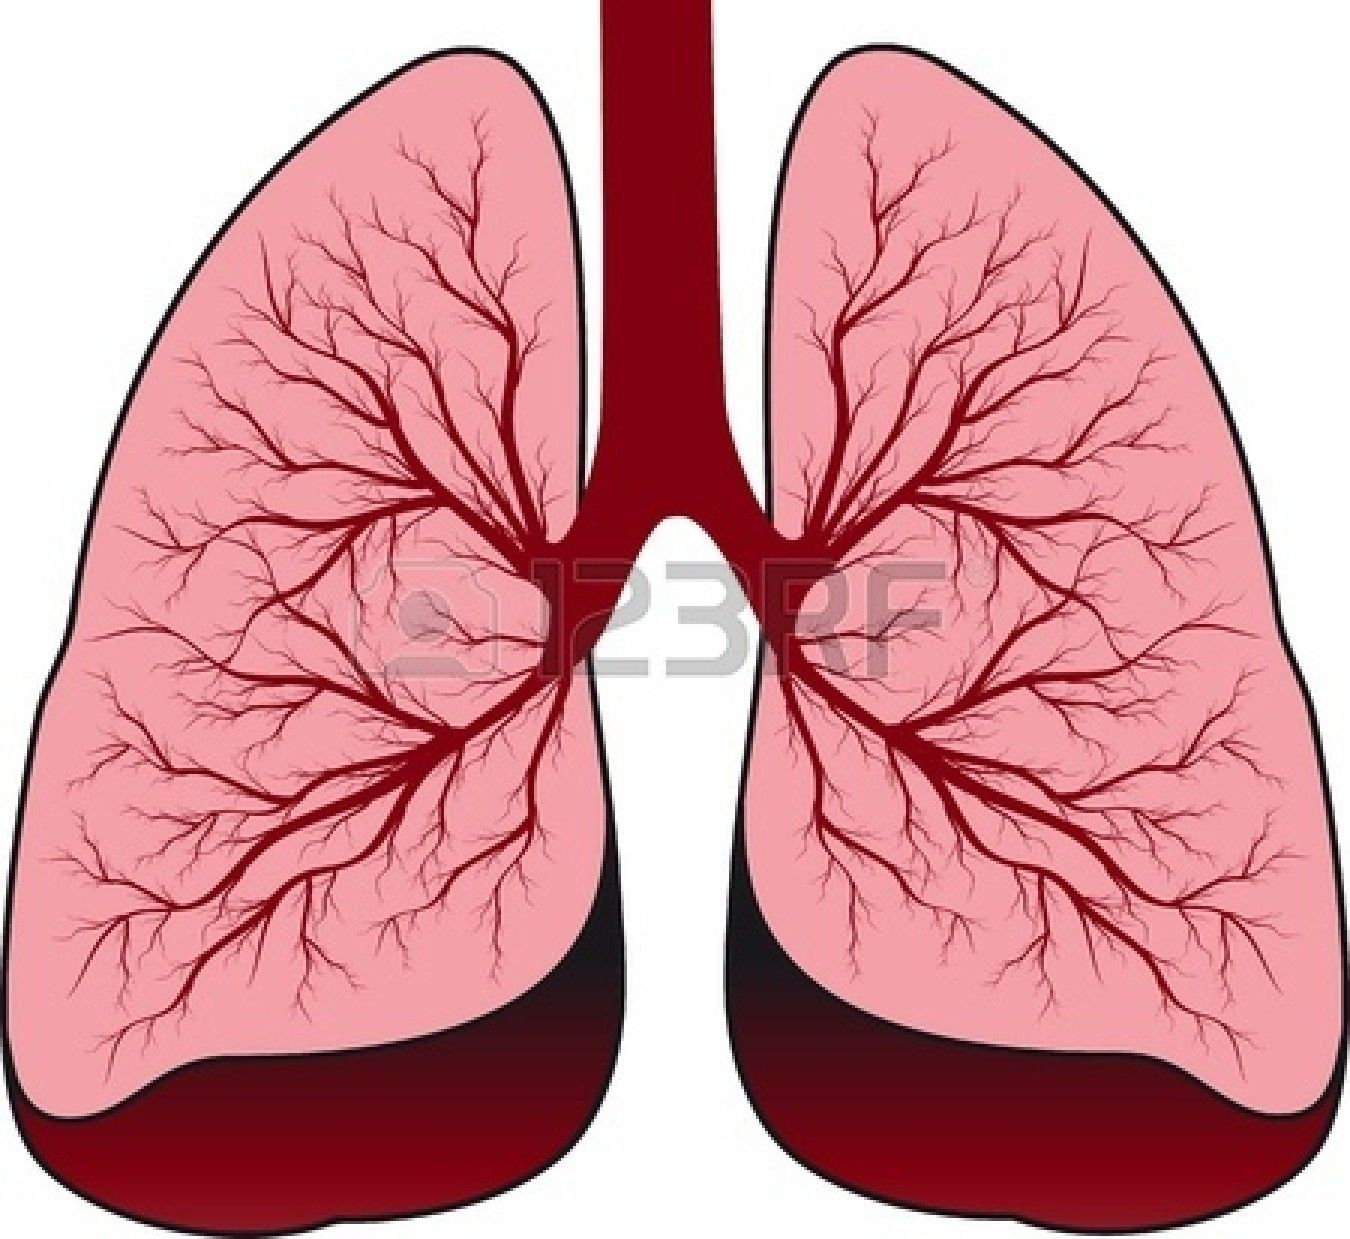 Lungs clipart. Bronchial system human royalty